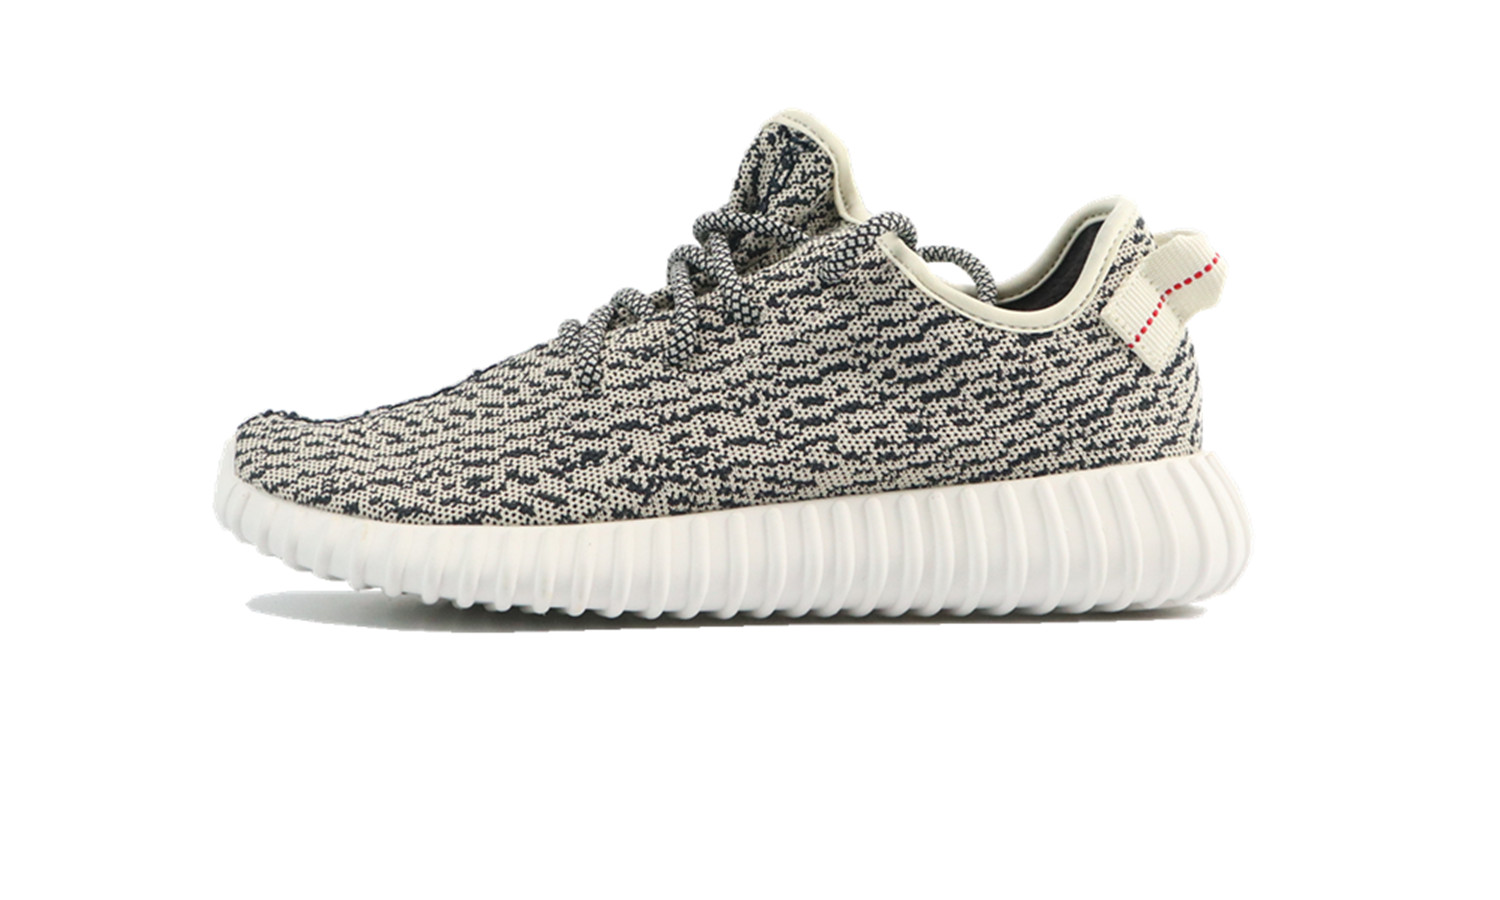 H12 YEEZY BOOST 350 TURTLE DOVE